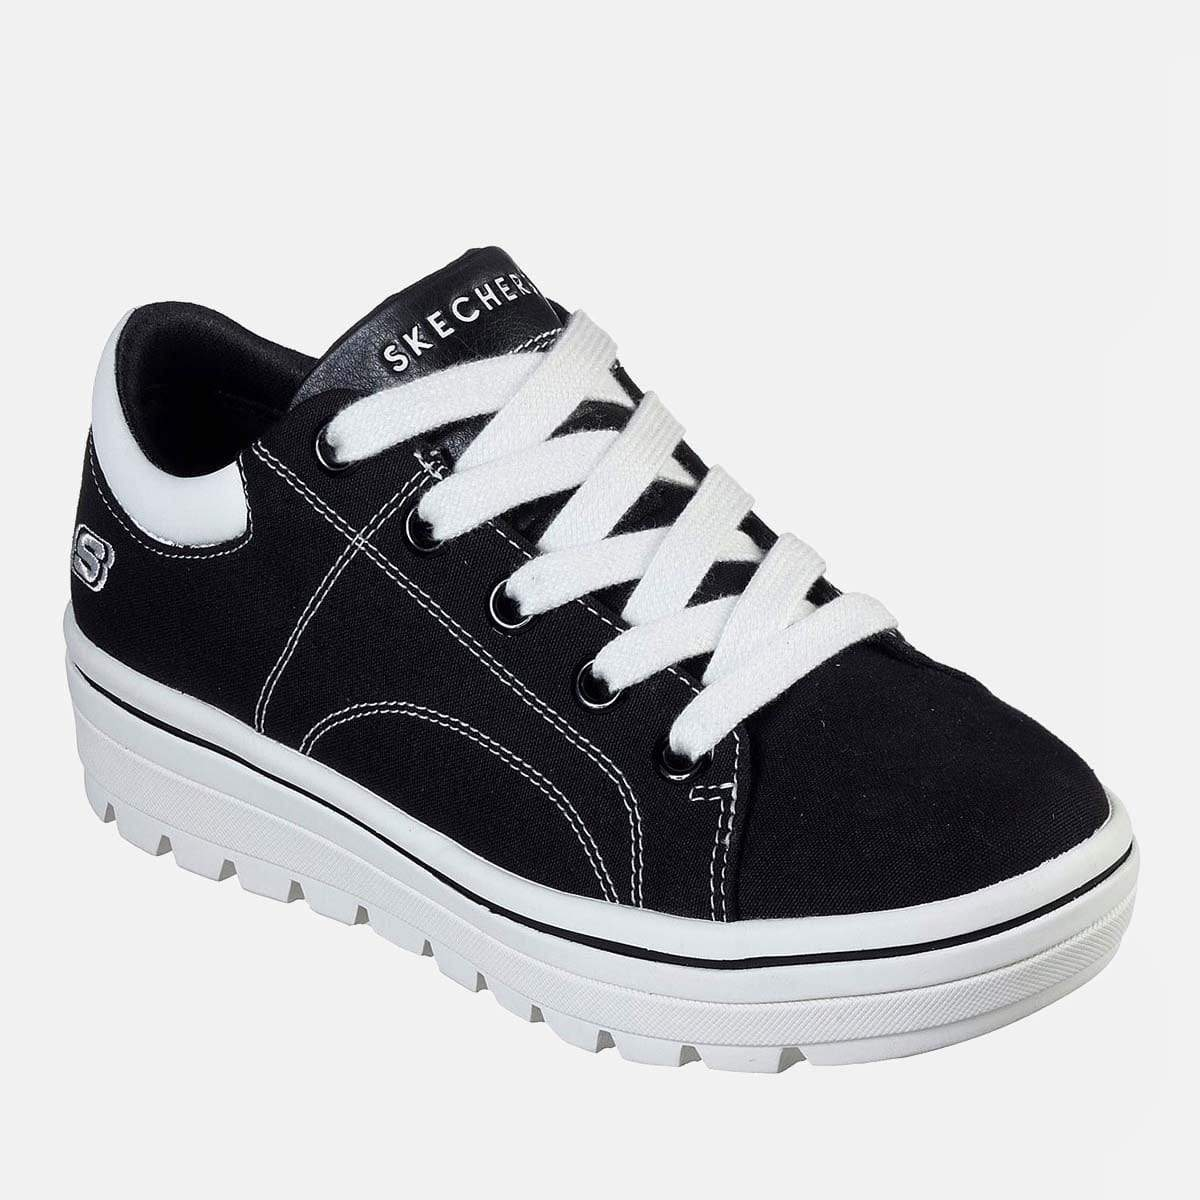 Bells Shoes Skechers Footwear Street Cleat Bring It Back 74100 Black